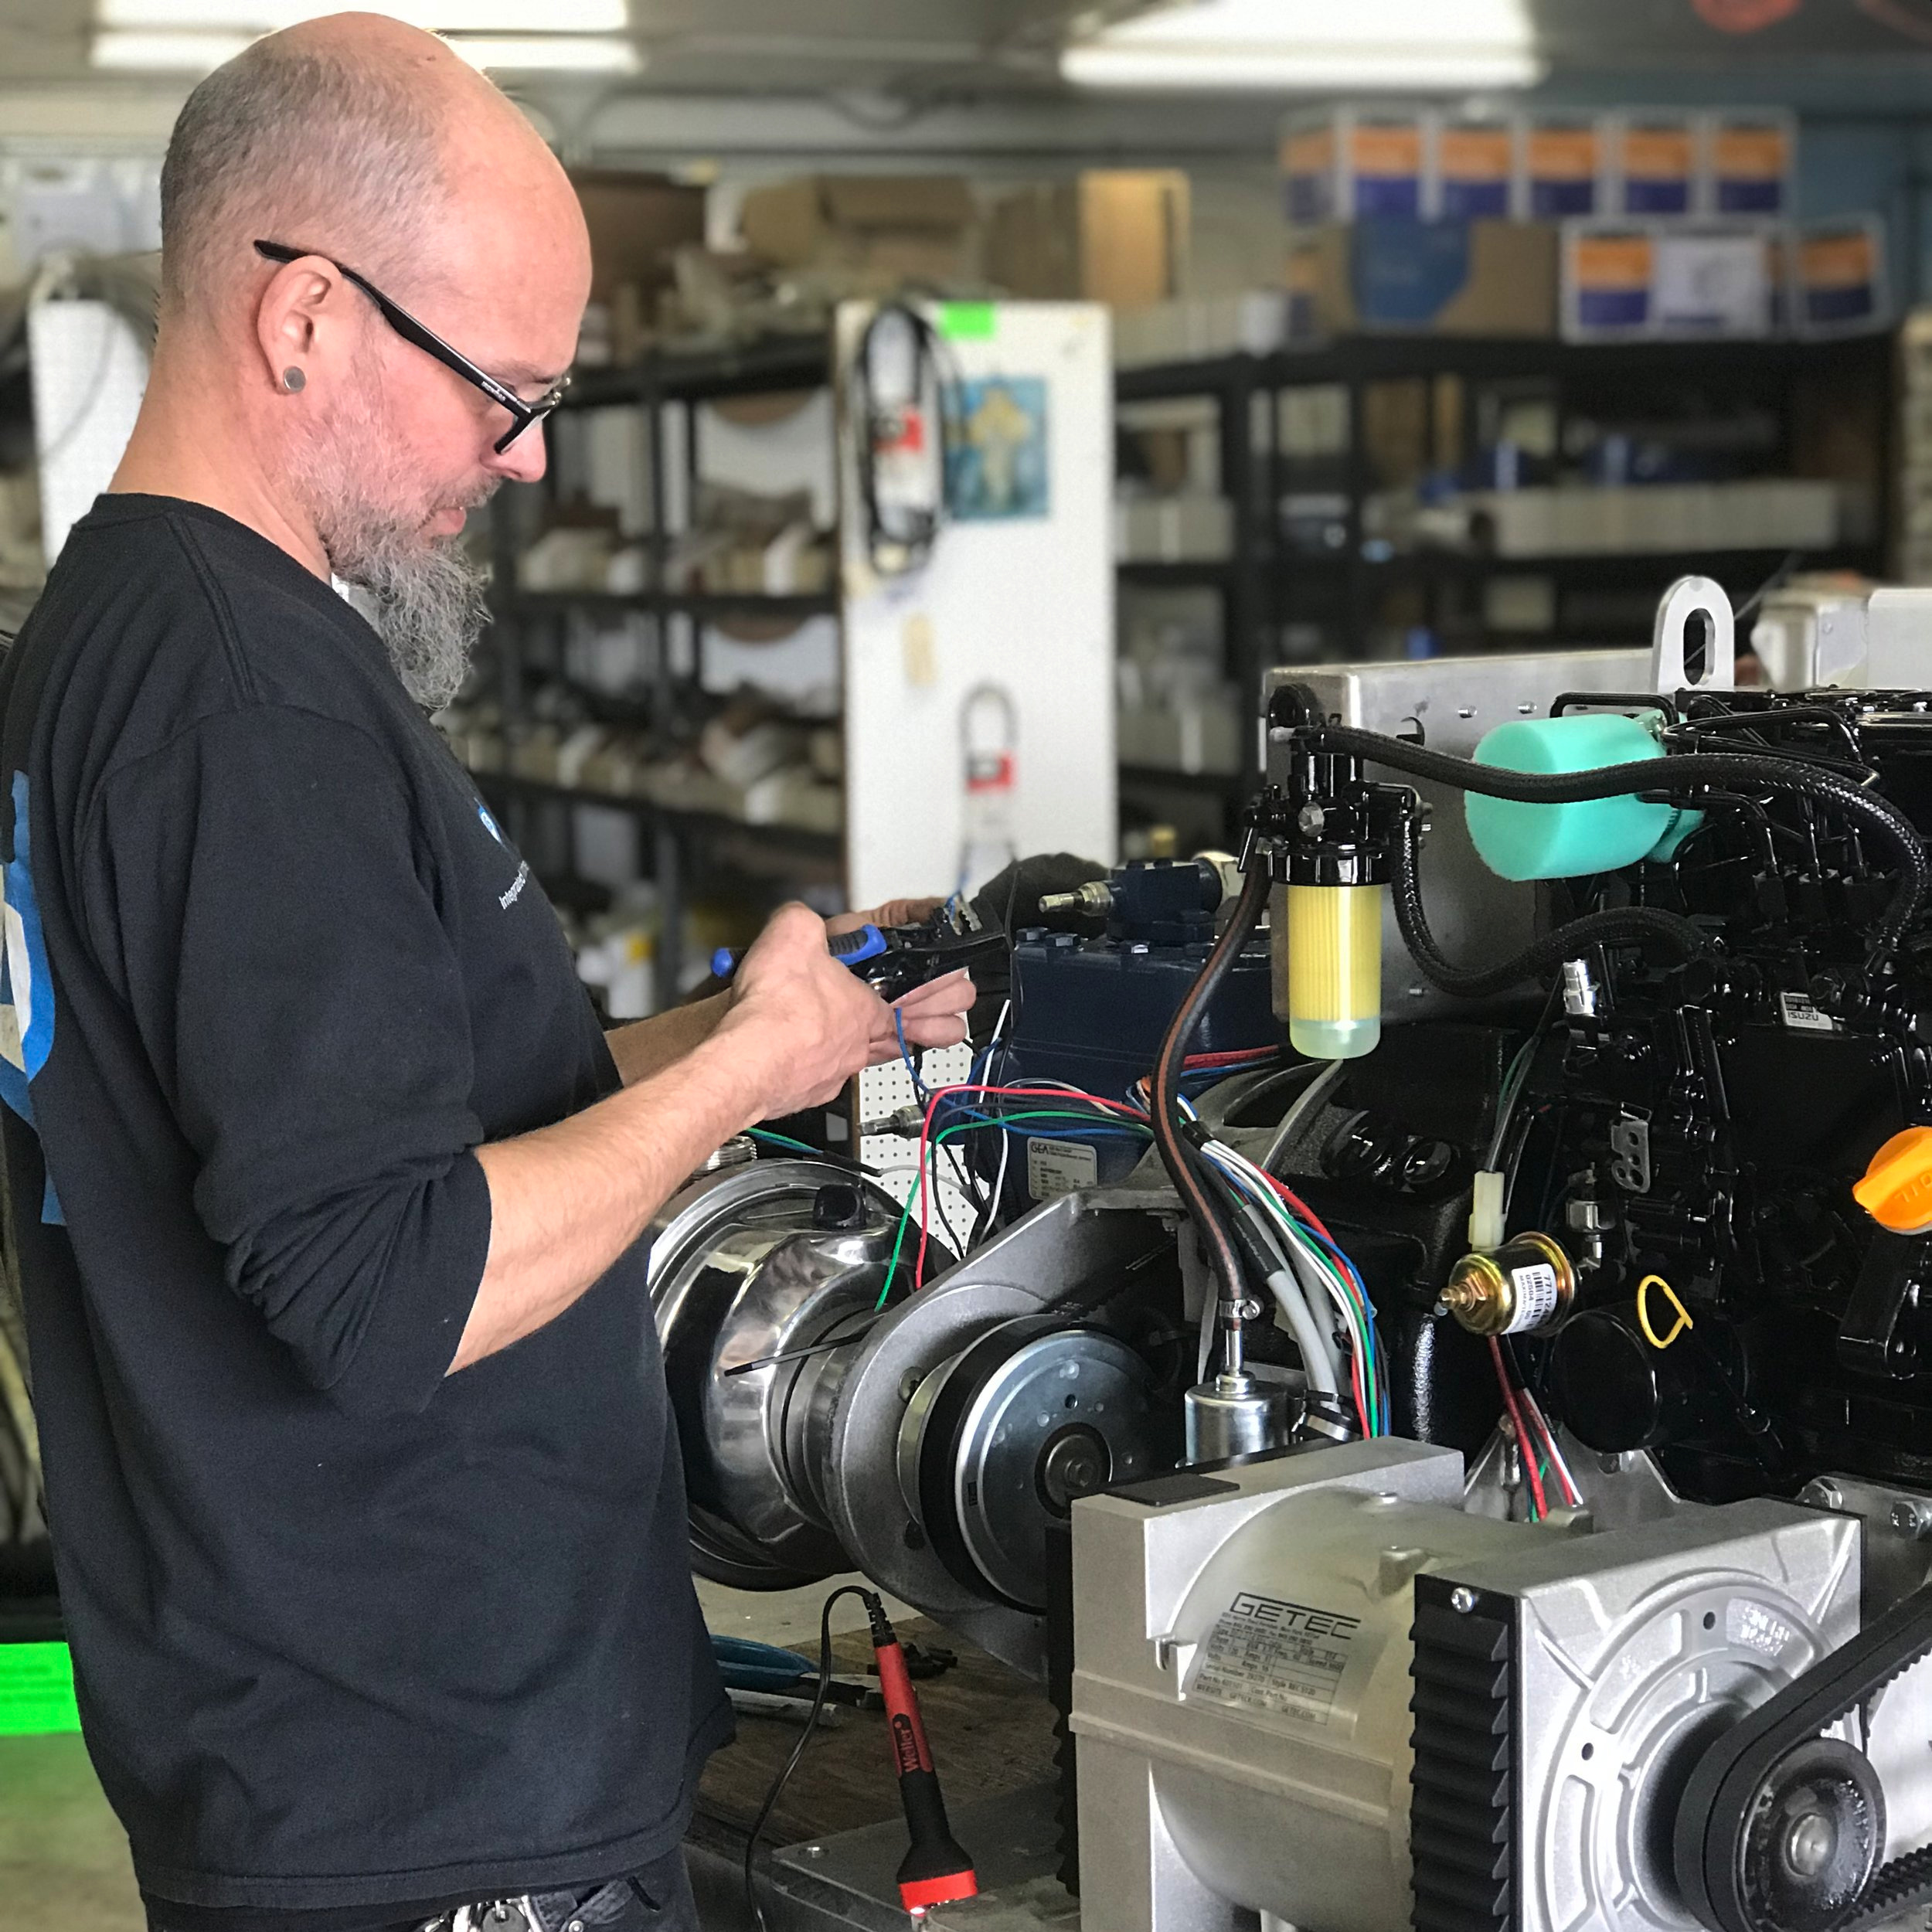 Experienced technicians can service units right at our shop in Seattle or on location where you need it.